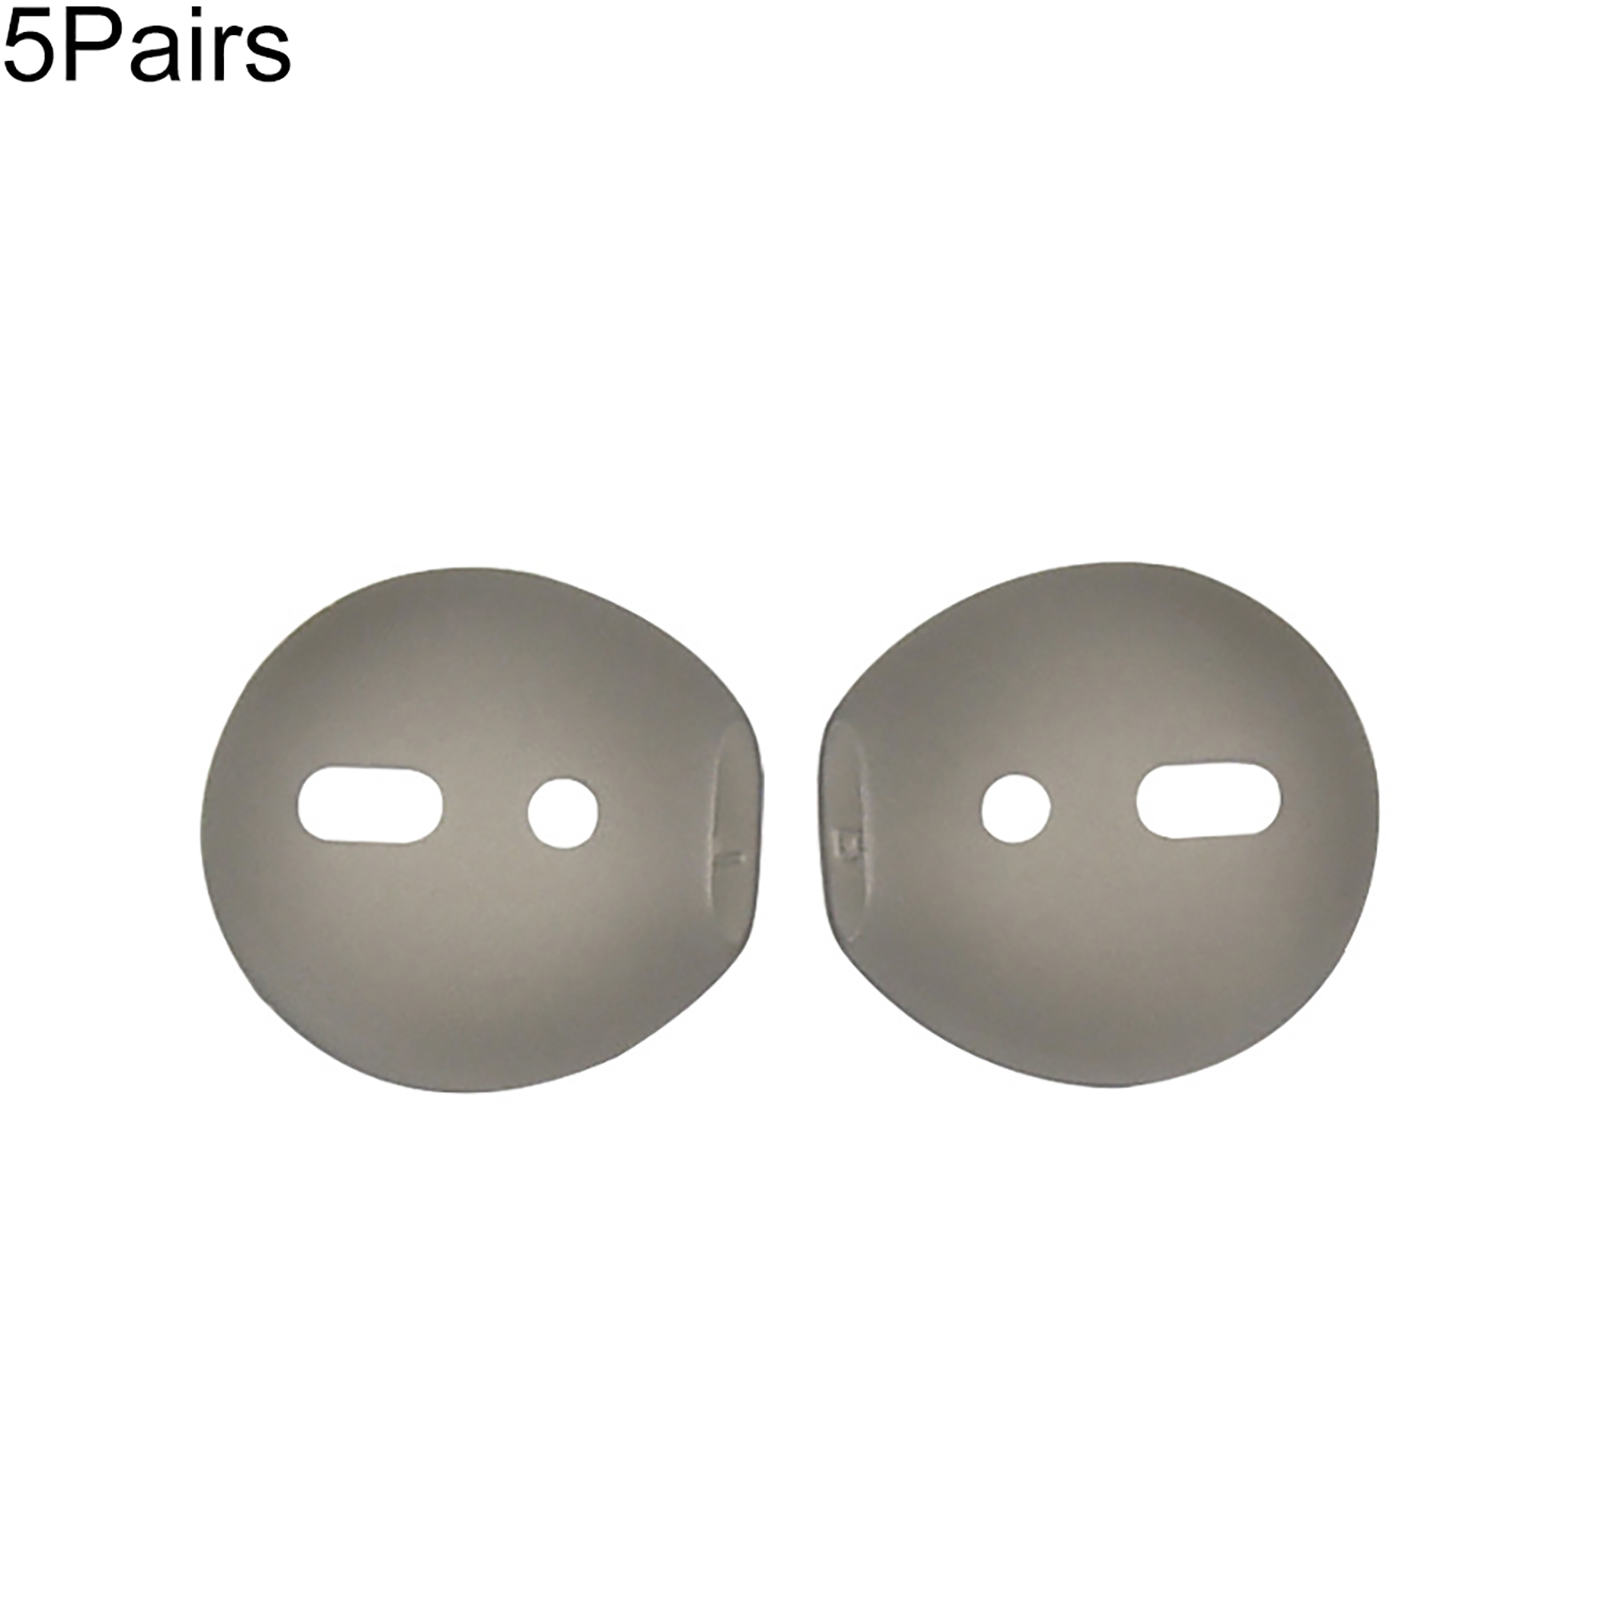 1-3-5-Pairs-Replacement-Silicone-Eartips-Anti-Lost-Earbud-Cover-For-Apple-Airpod thumbnail 26